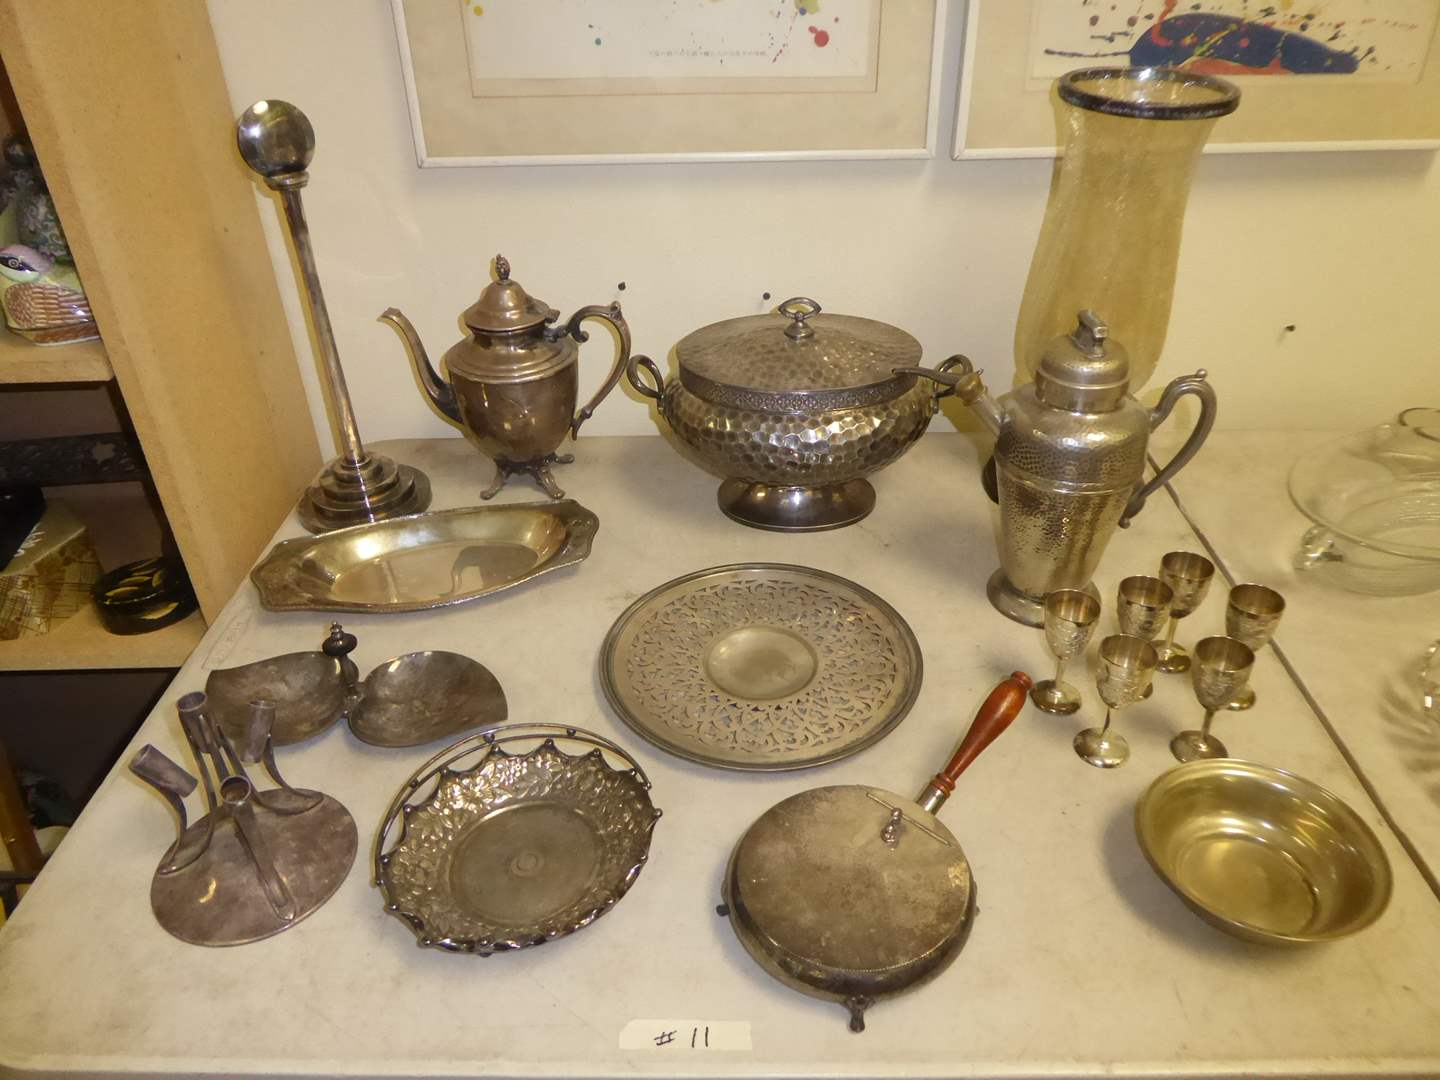 Lot # 10 - Plated Silver Serving Dished & Crackle Glass Candle Holder  (main image)